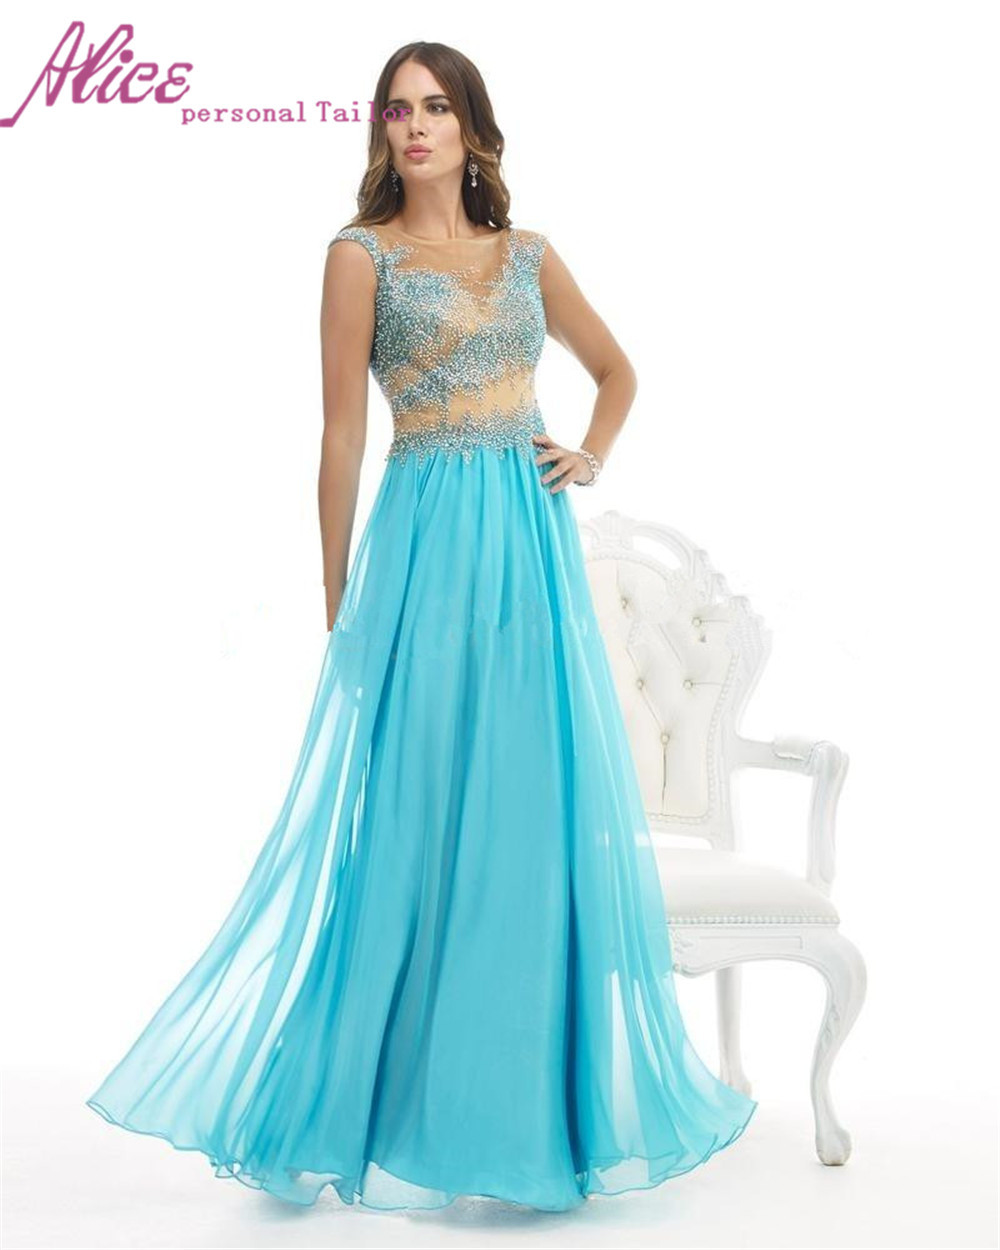 71a112c79e5 Get Quotations · Stylish New Crystal Beading Chiffon A-line O-Neck Ice Blue  and White Formal